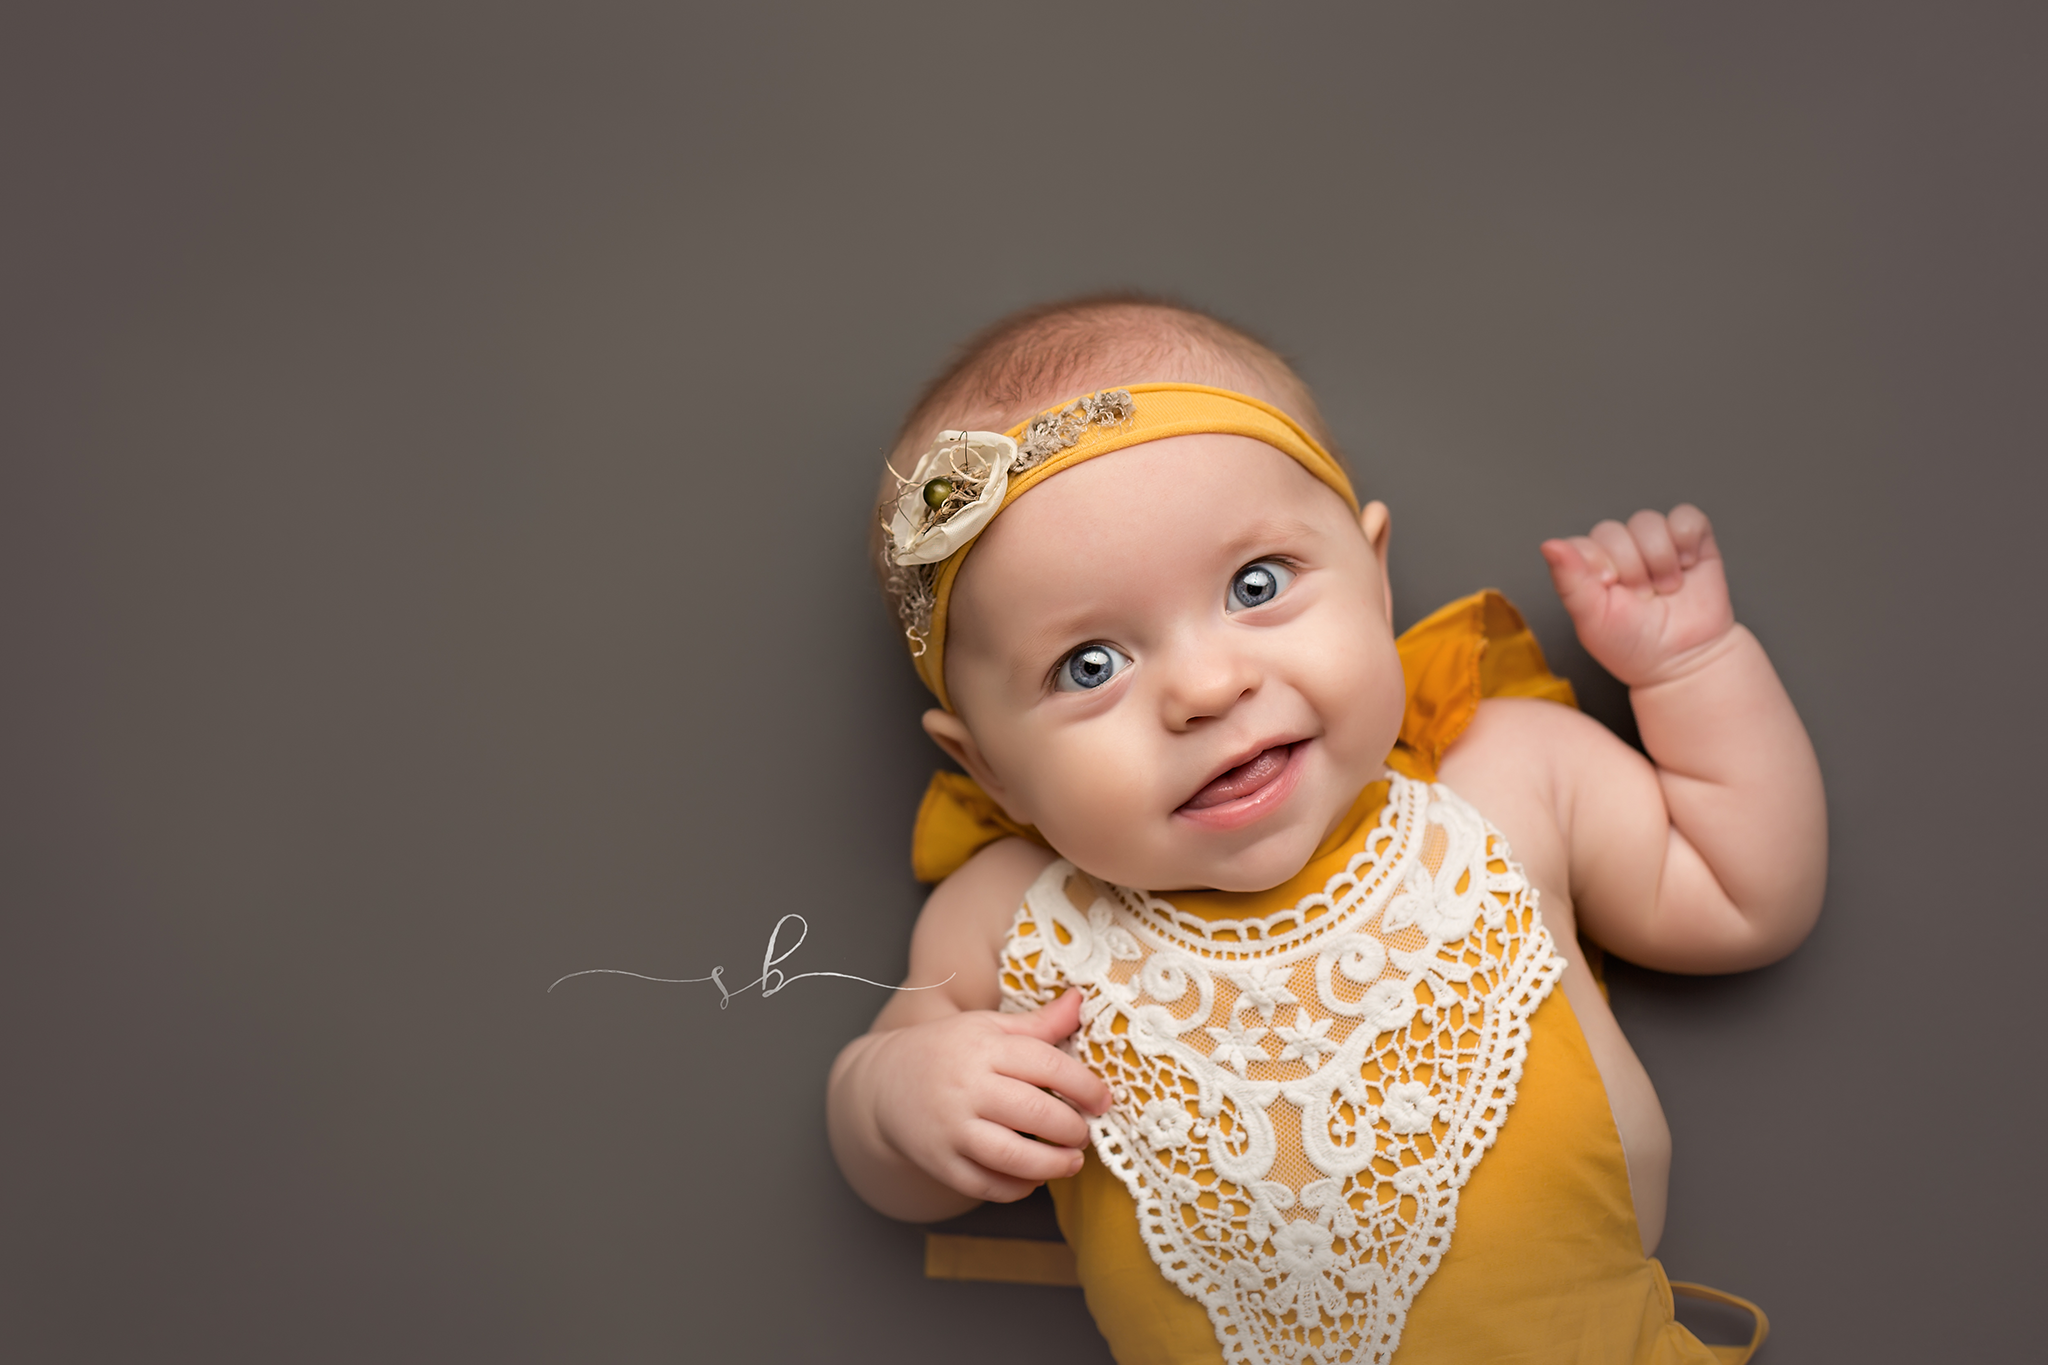 Smiling 6 month old